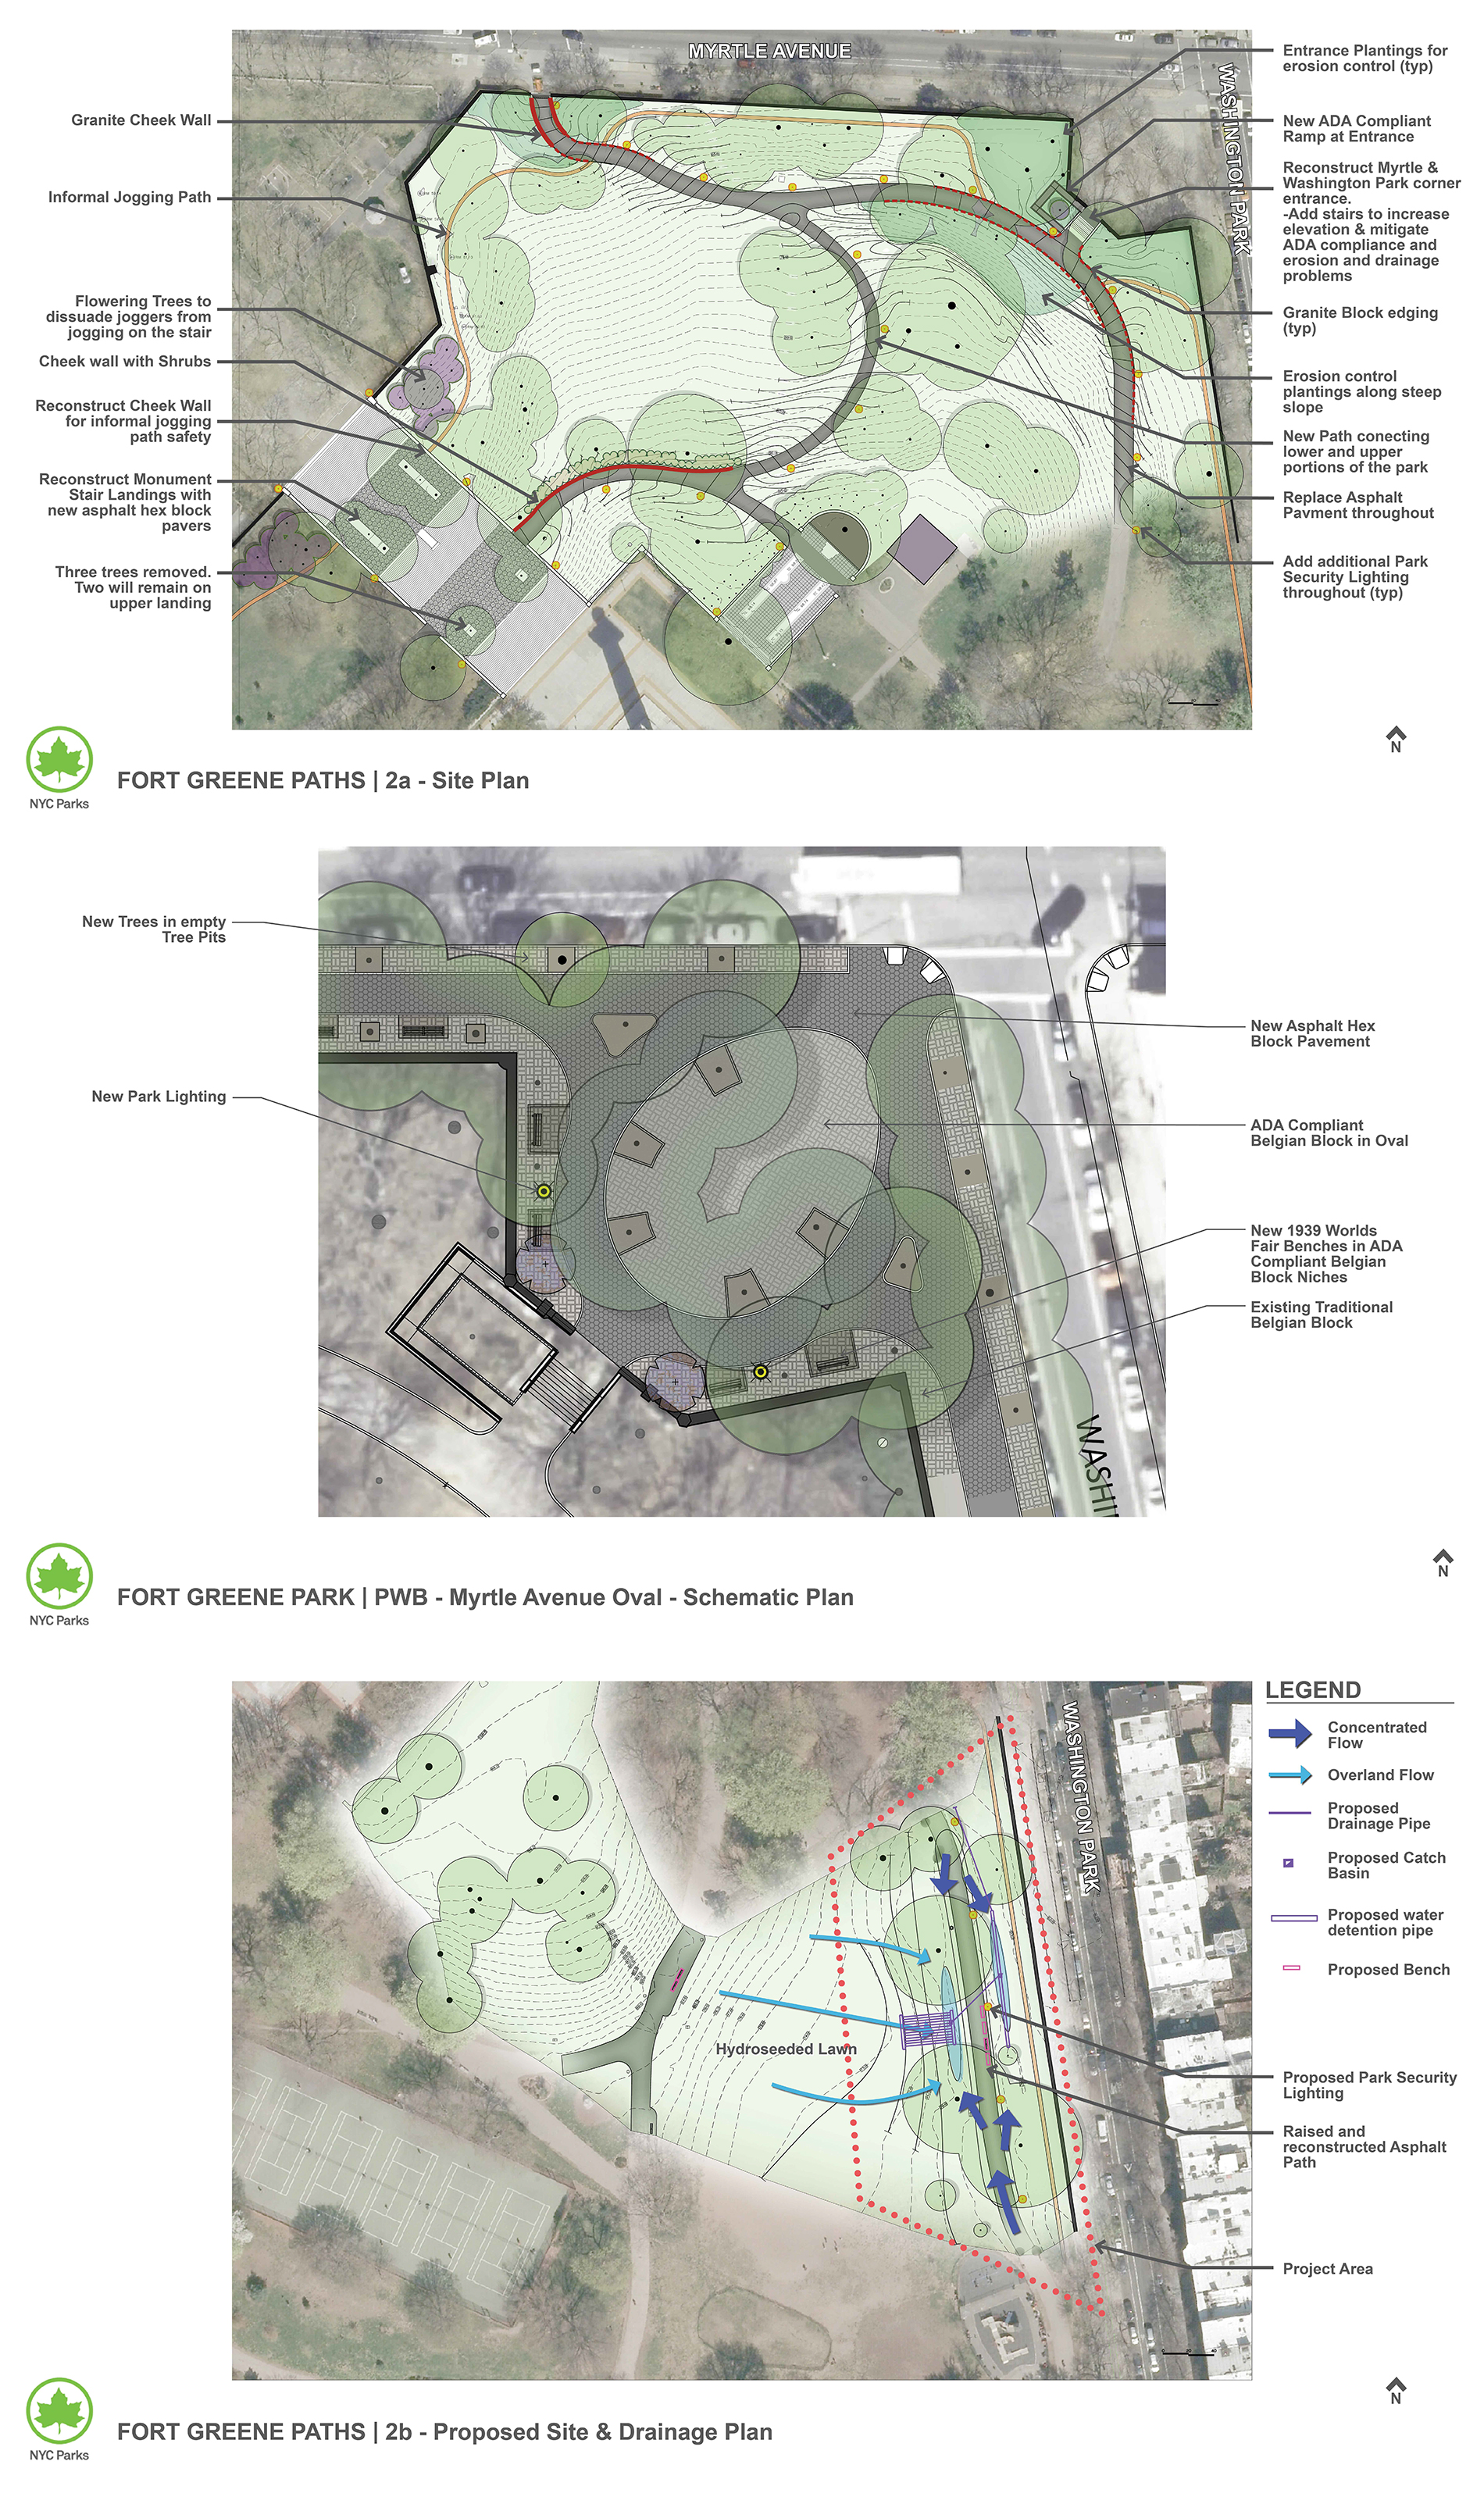 Design of Fort Greene Park Entrance Reconstruction and Drainage Improvements